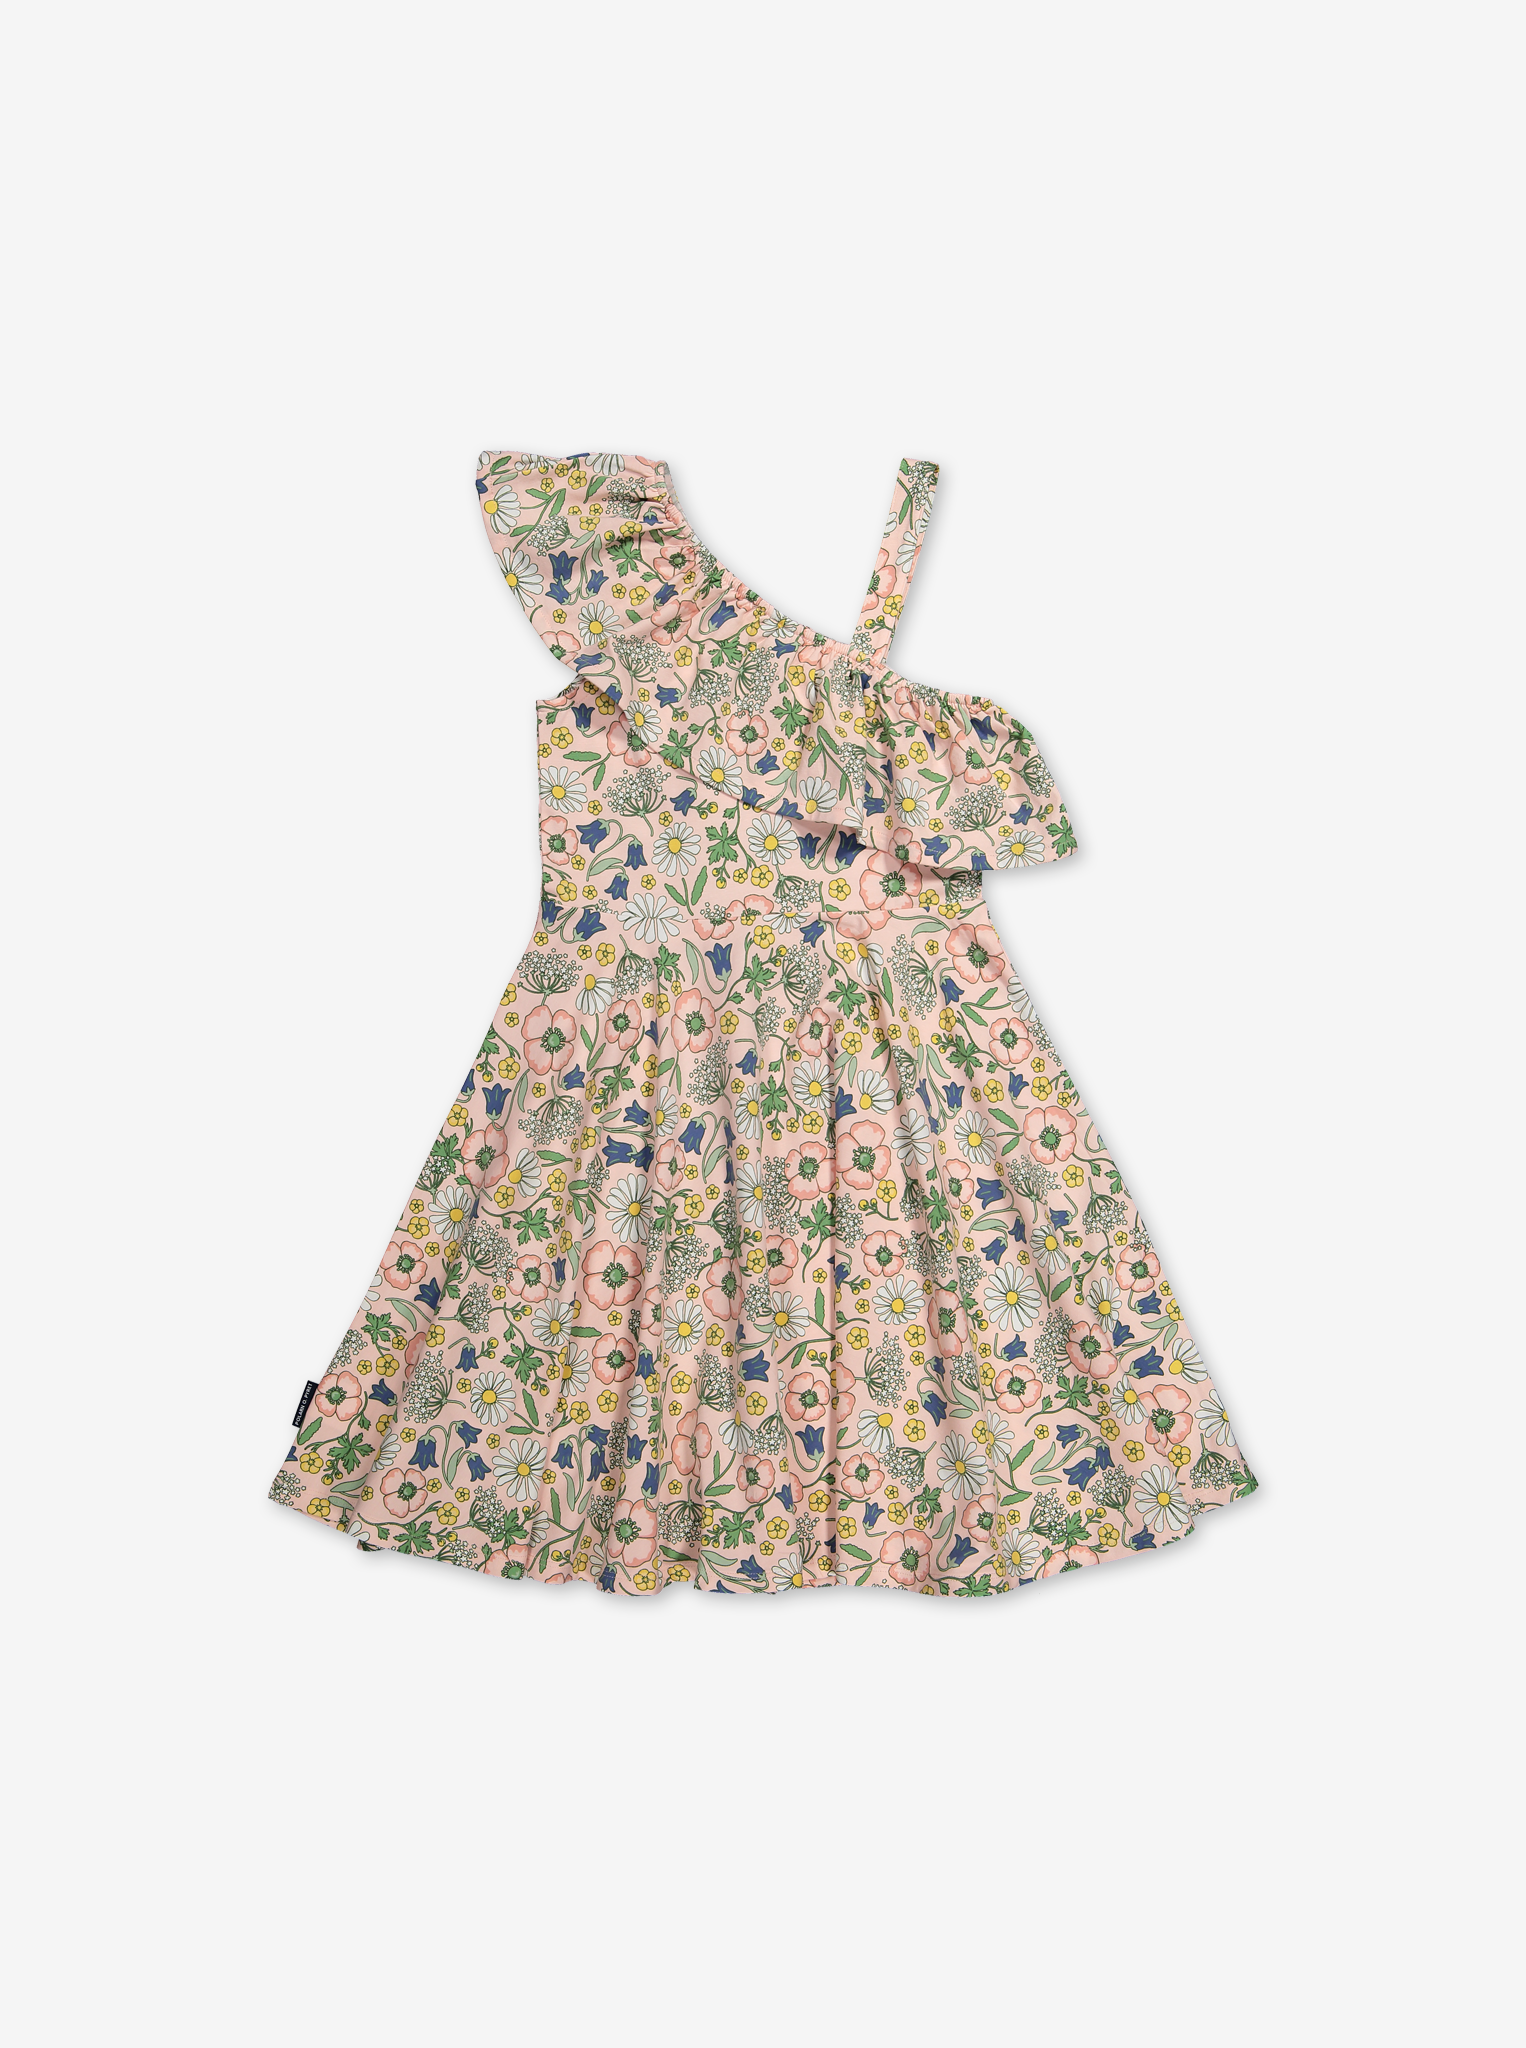 Scandi Floral Kids Dress-Girl-6-12y-Pink